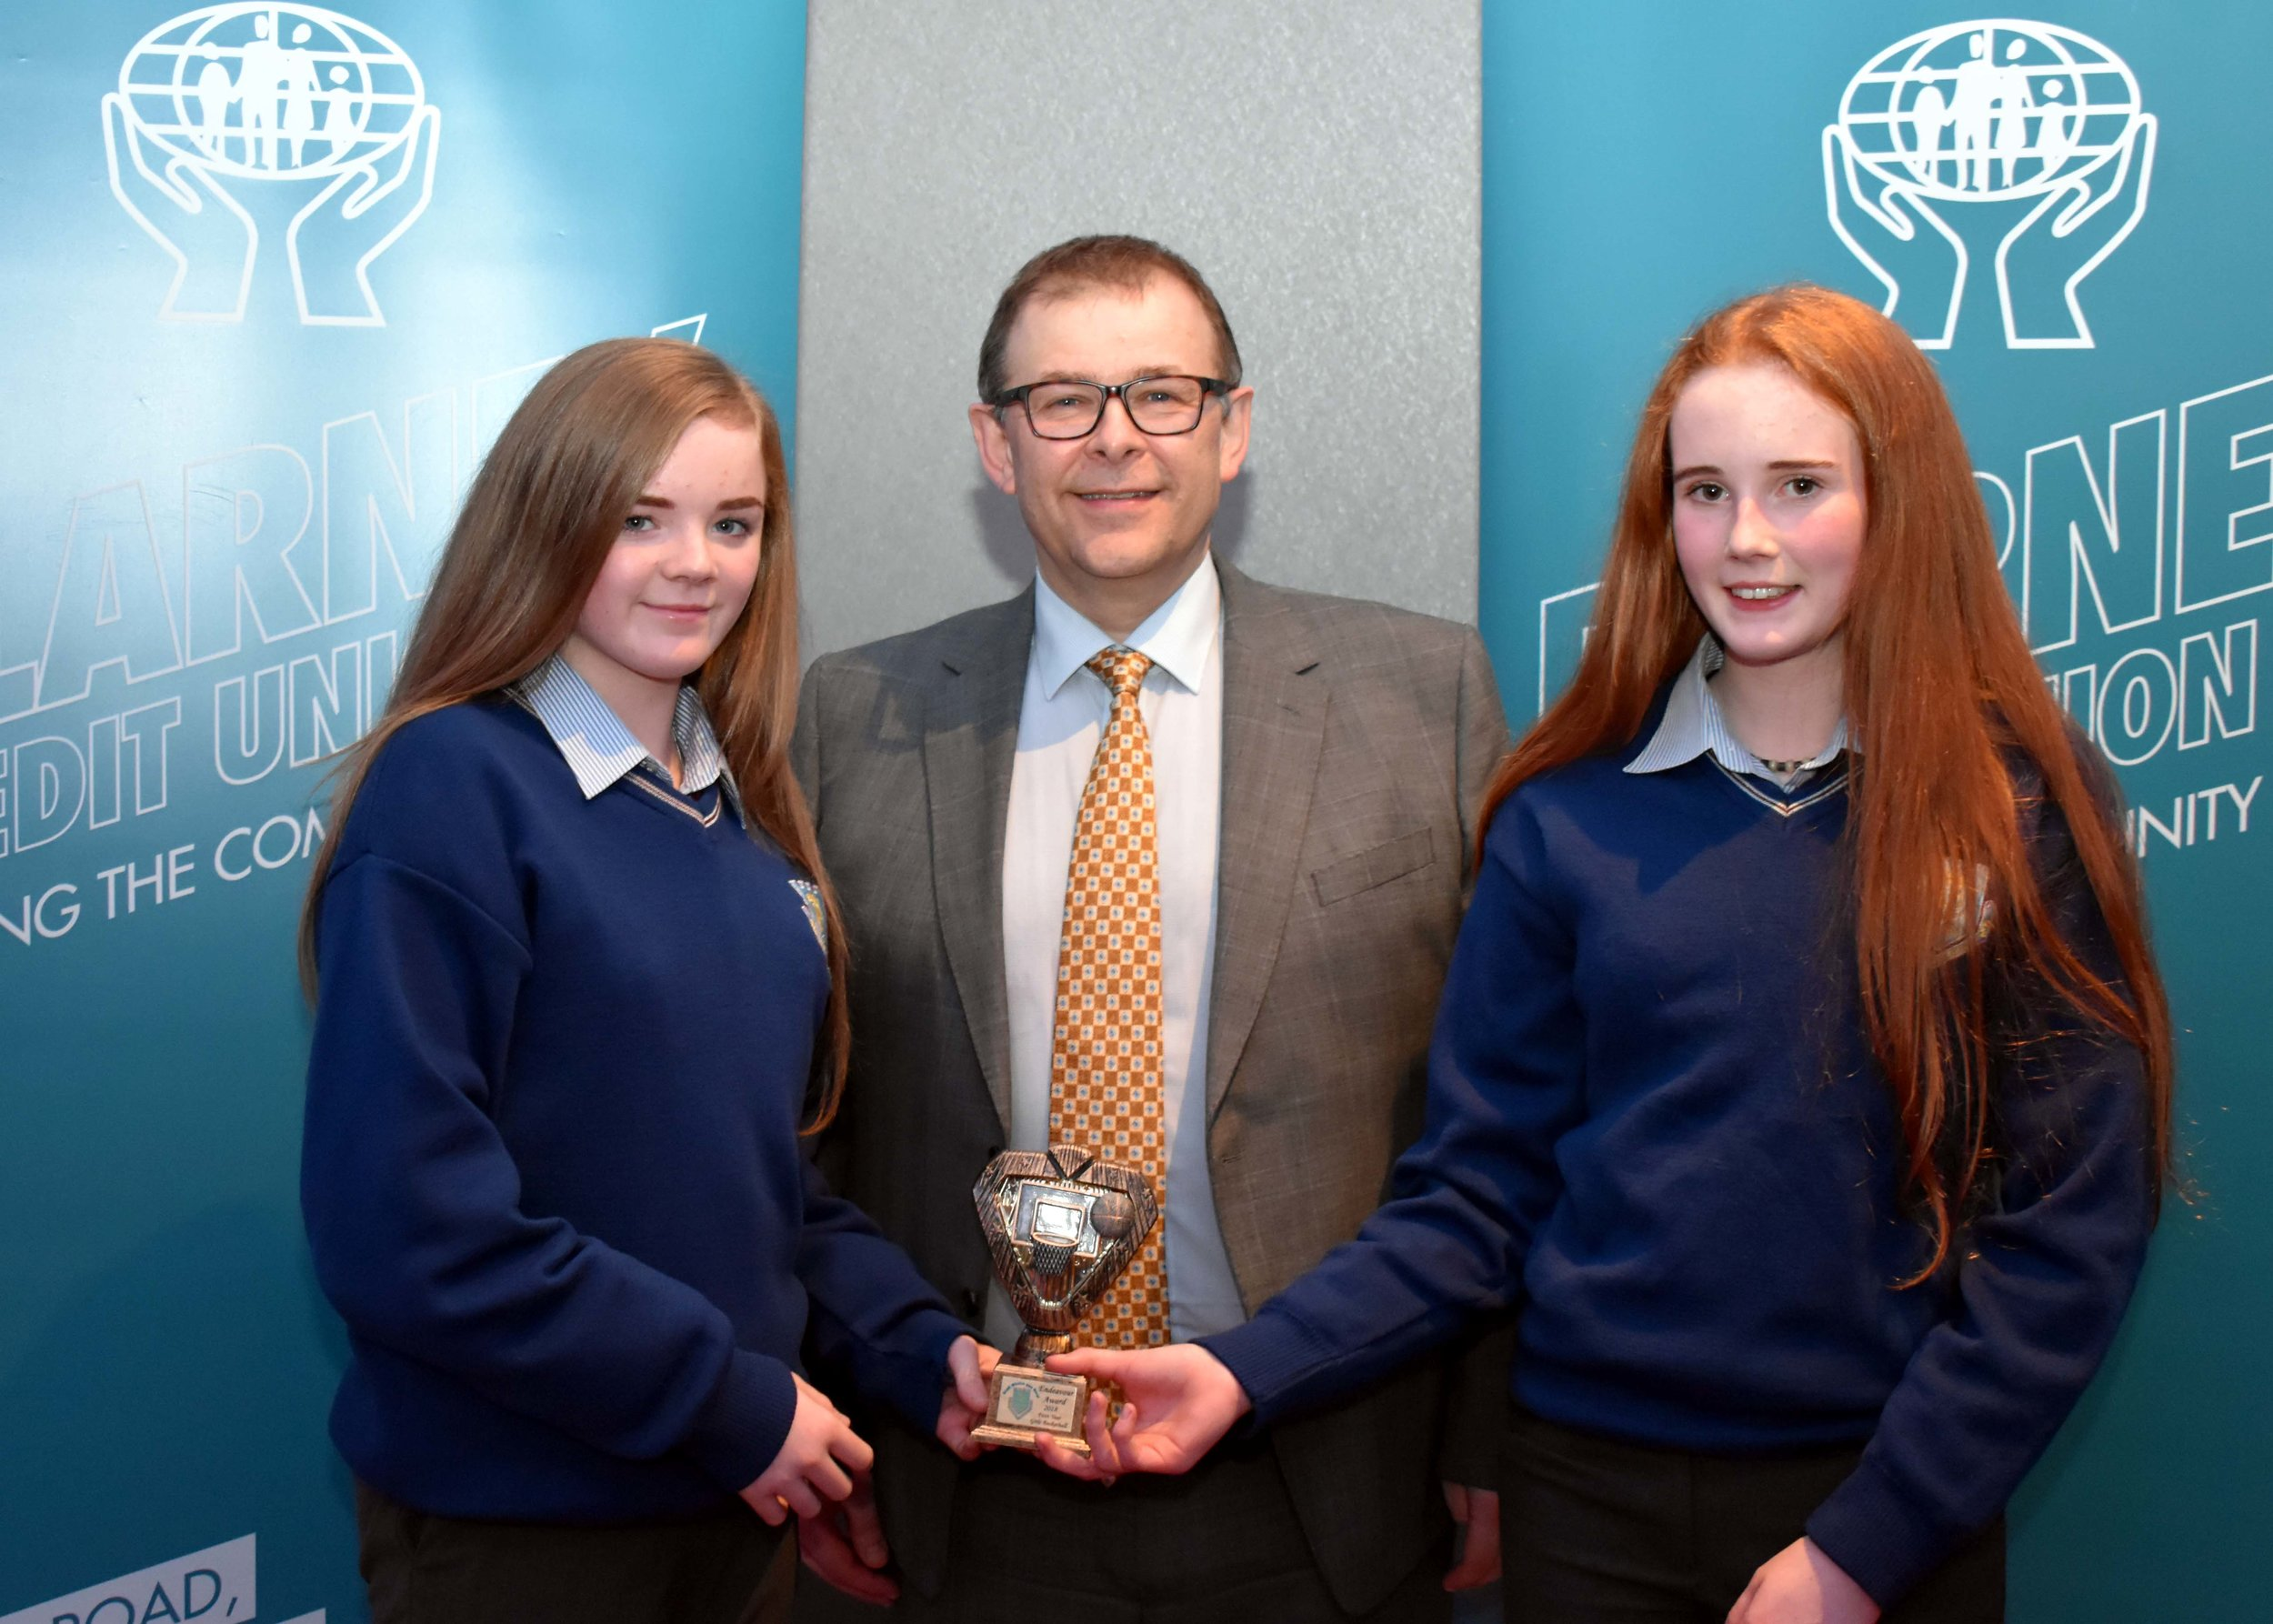 First Year Girls Basketball Team receiving an endeavour award for reaching the All Ireland. Joint captains Saoirse Breen and Orla Humphries are accepting the award on behalf of the team. Saoirse also won a Basketball All Ireland Final with her club Brunell. (Pictured with Mr. Mark McGloughlin - BOM and Blarney Credit Union)